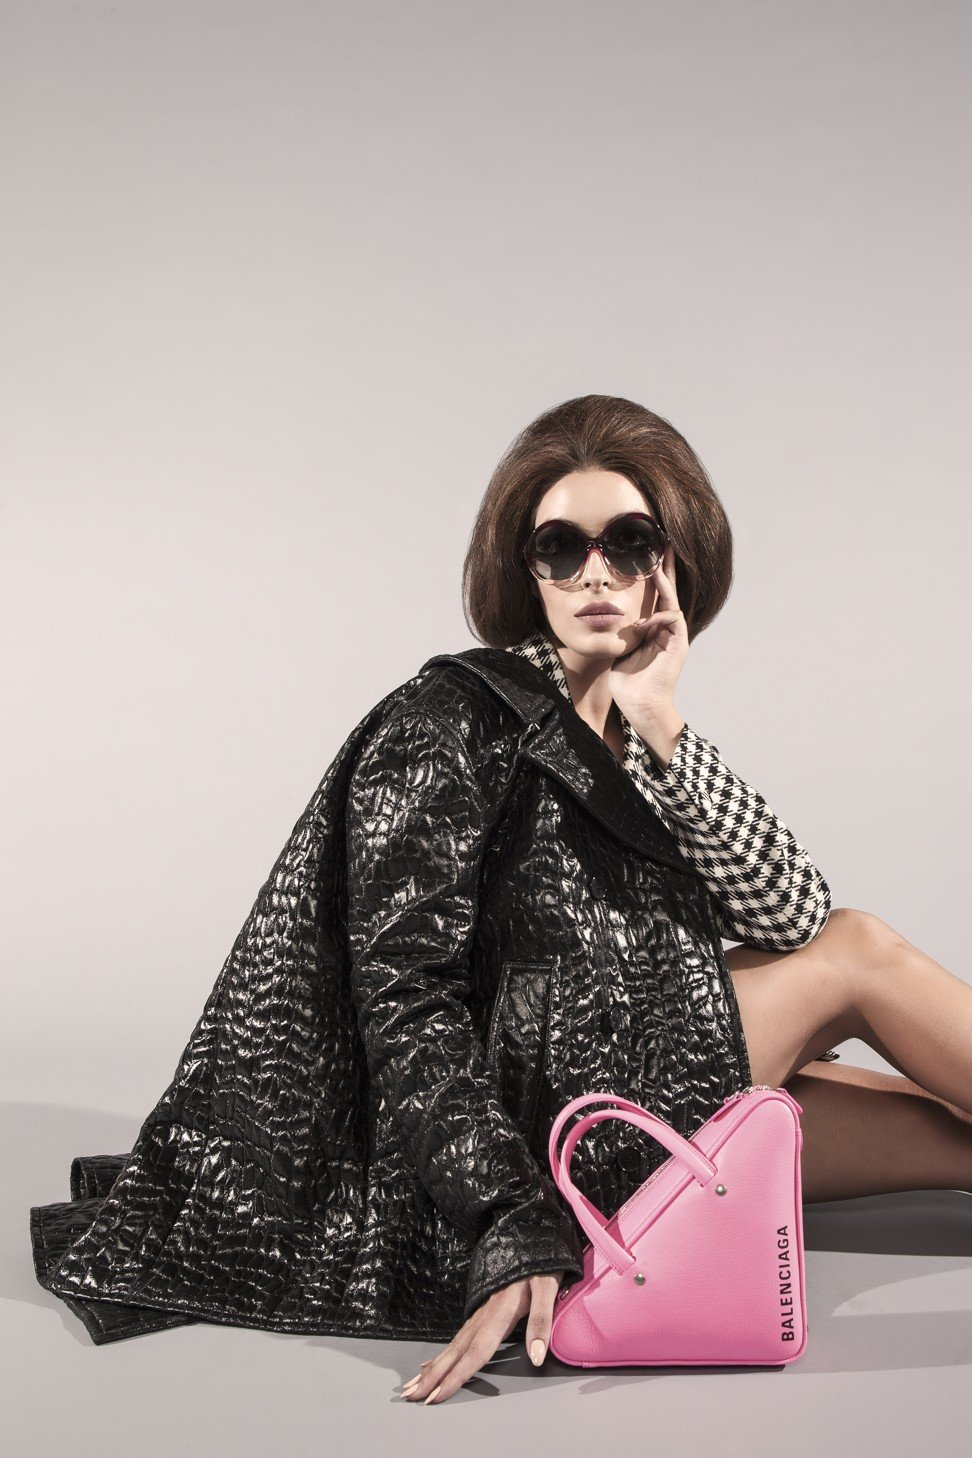 How Dior, Prada, Saint Laurent, Alexander McQueen and other luxury brands are bringing 60s fashion back